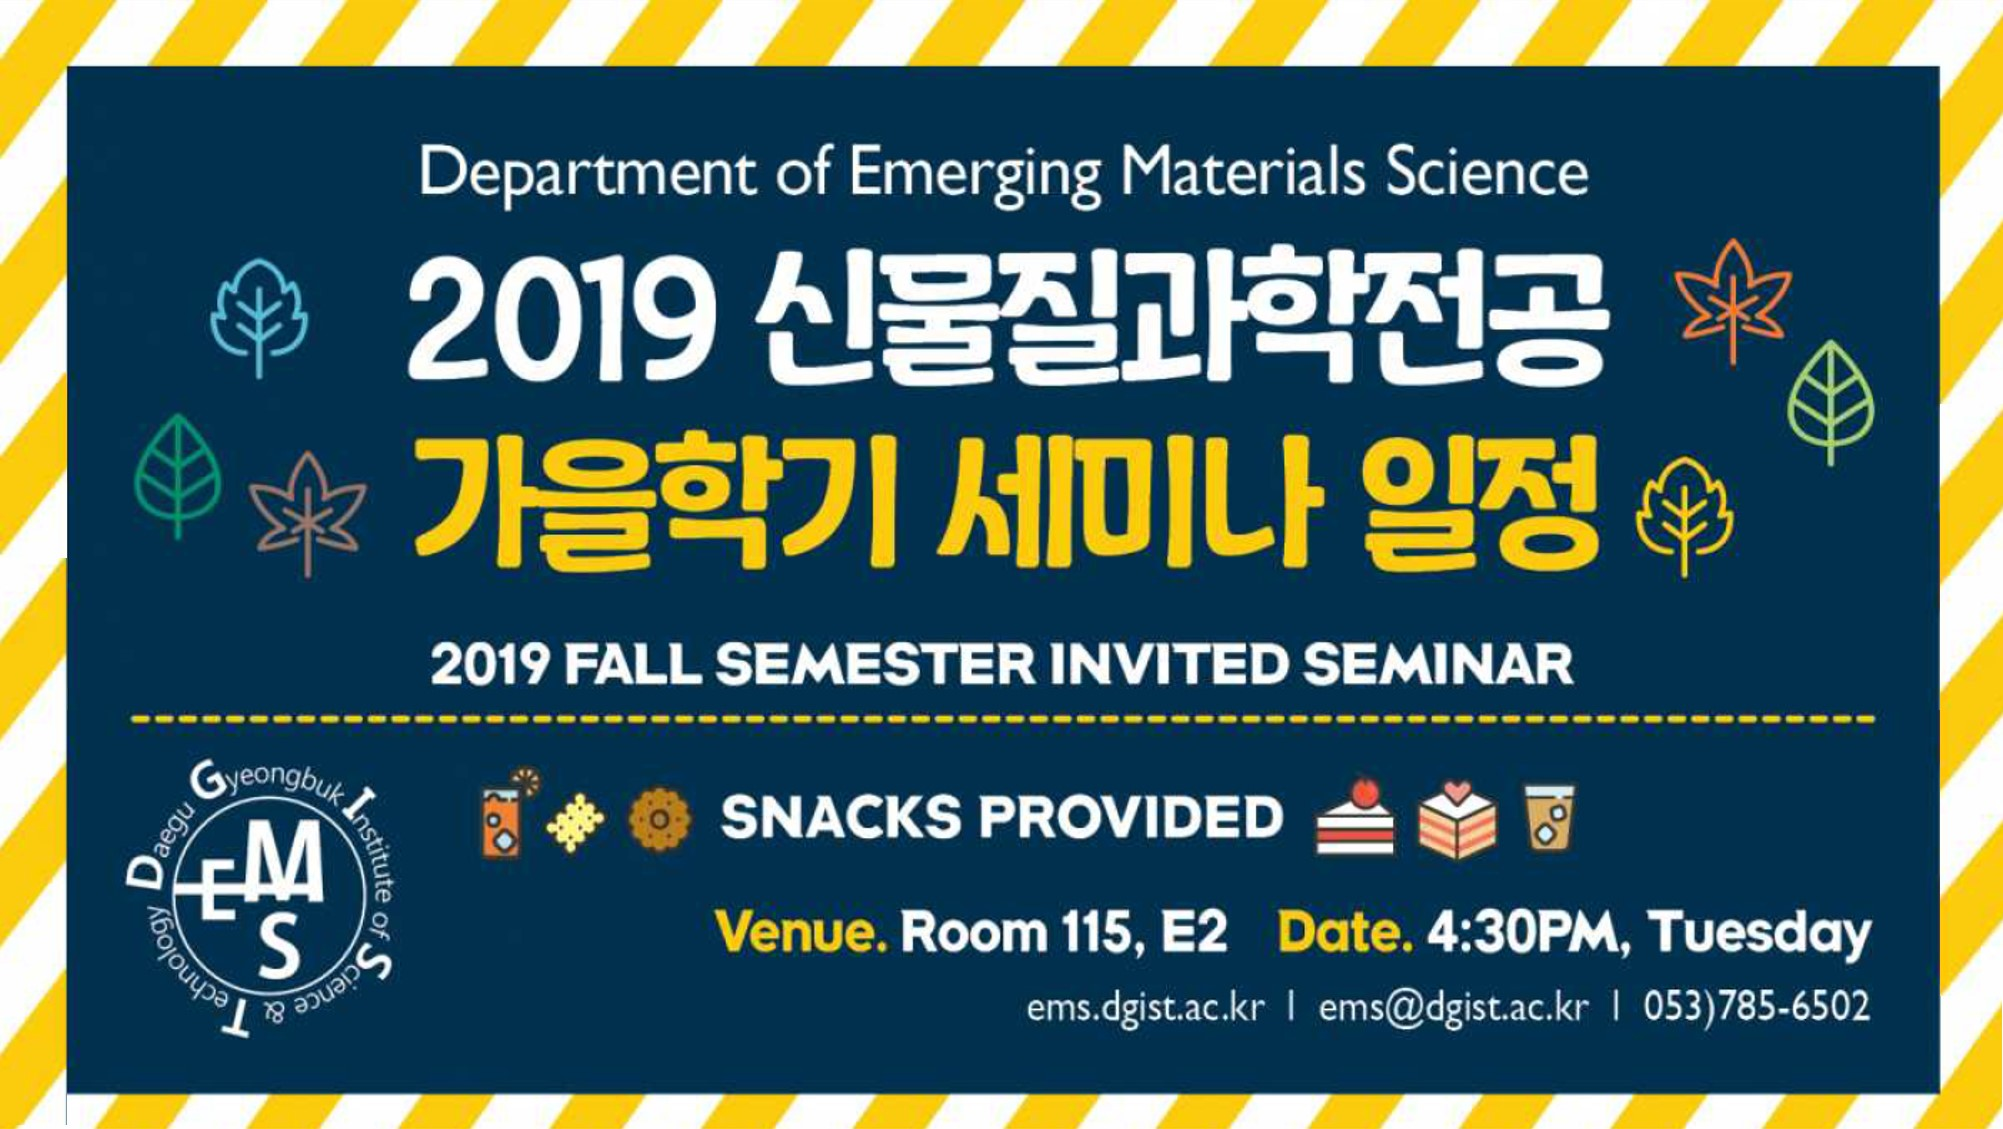 2019 Fall Semester Invited Seminar of EMS 이미지